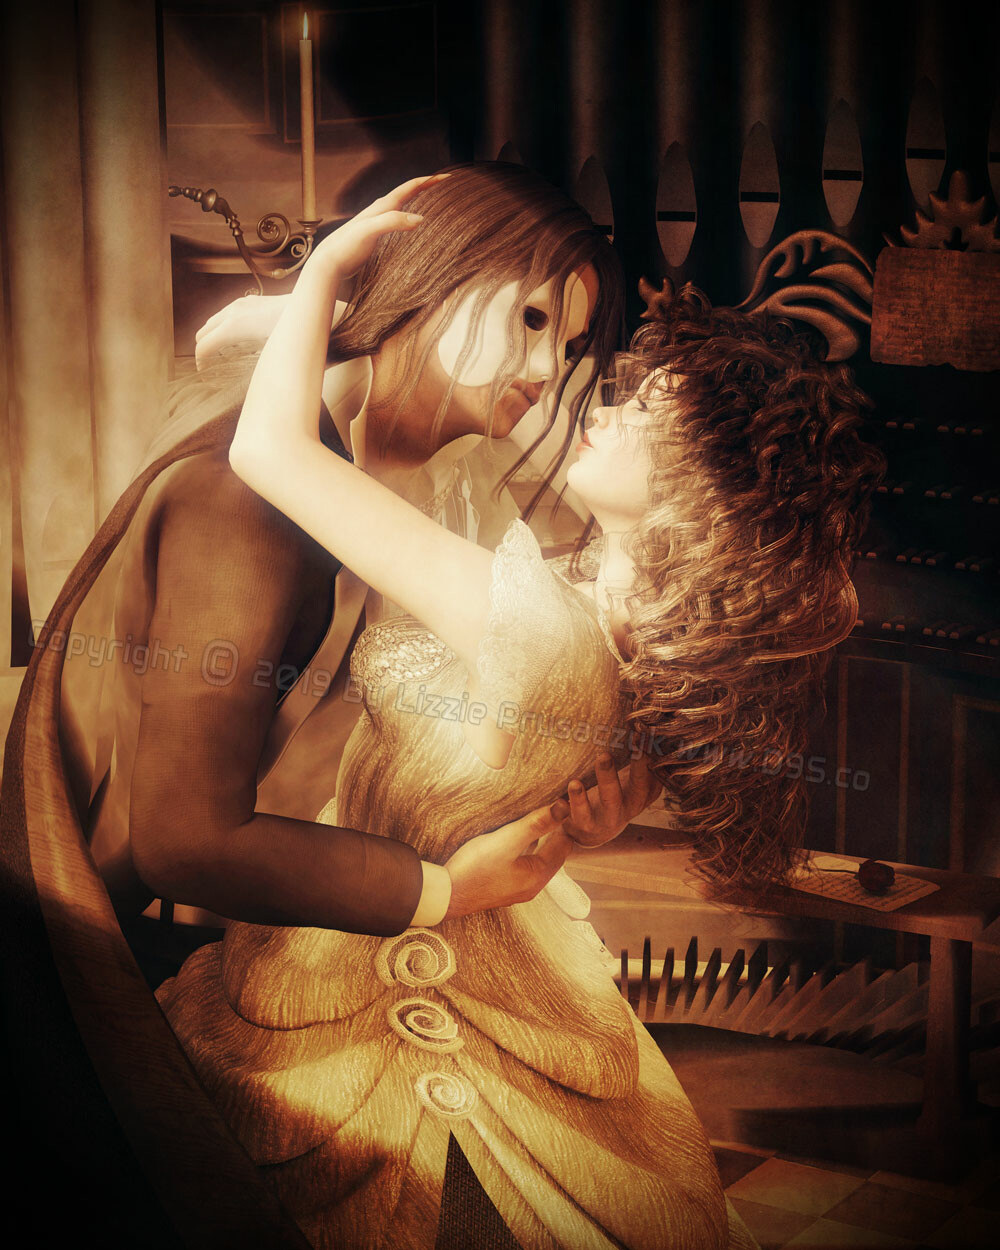 A romantic artwork inspired by the Phantom of the Opera.